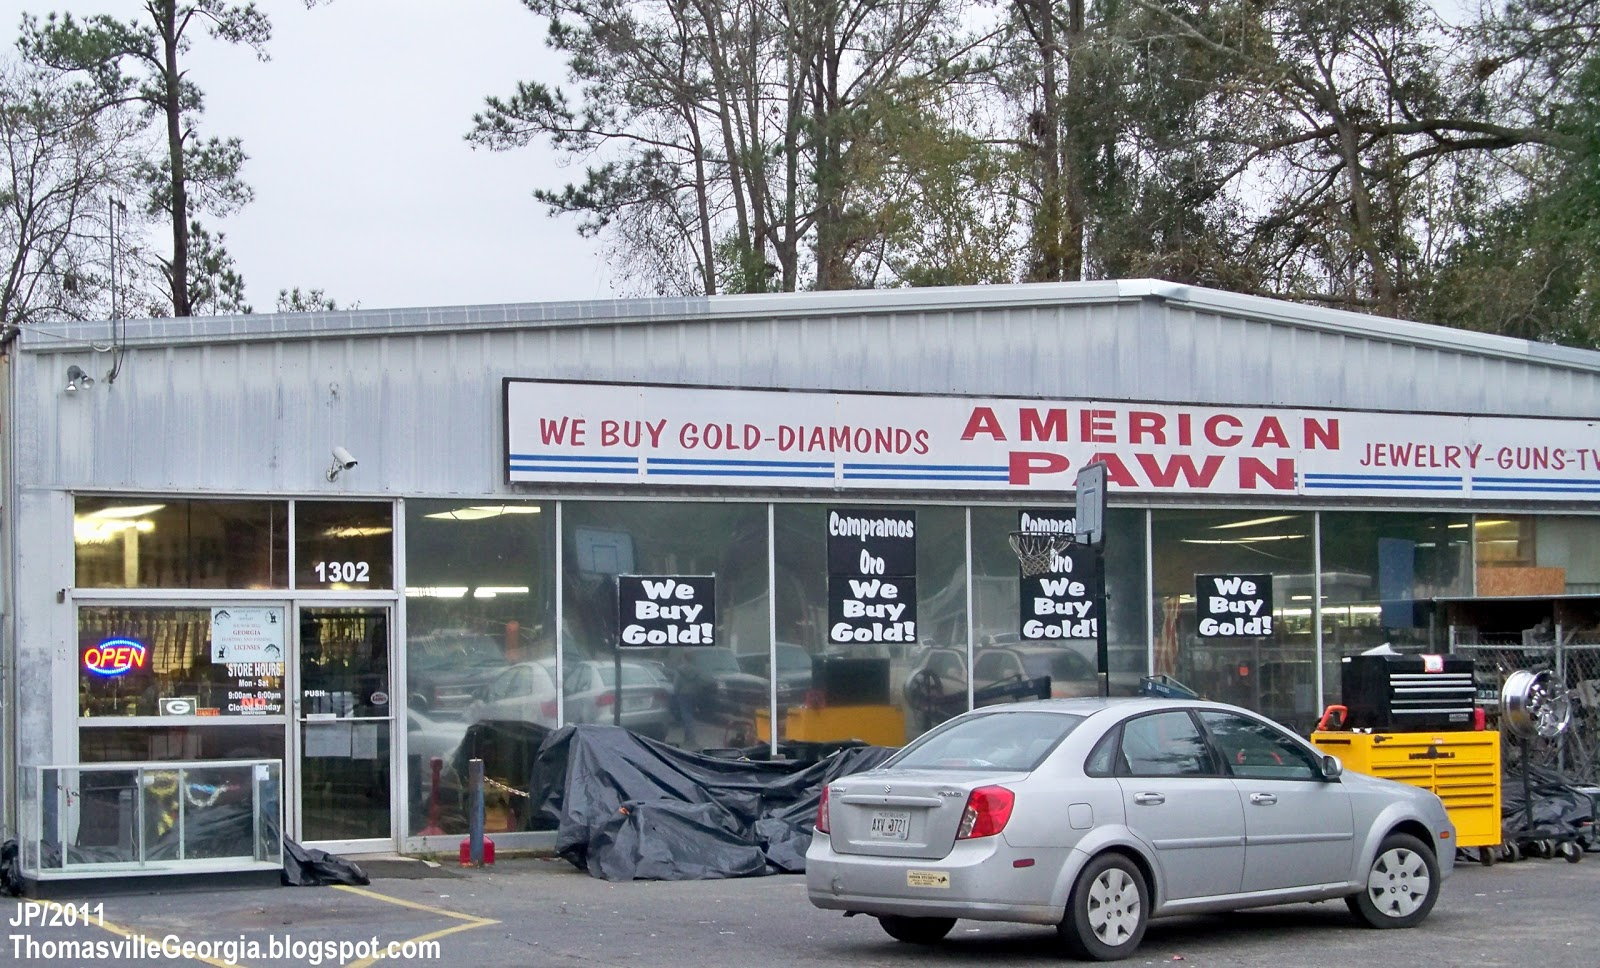 Shop America Mesmerizing With American Pawn Shop Image